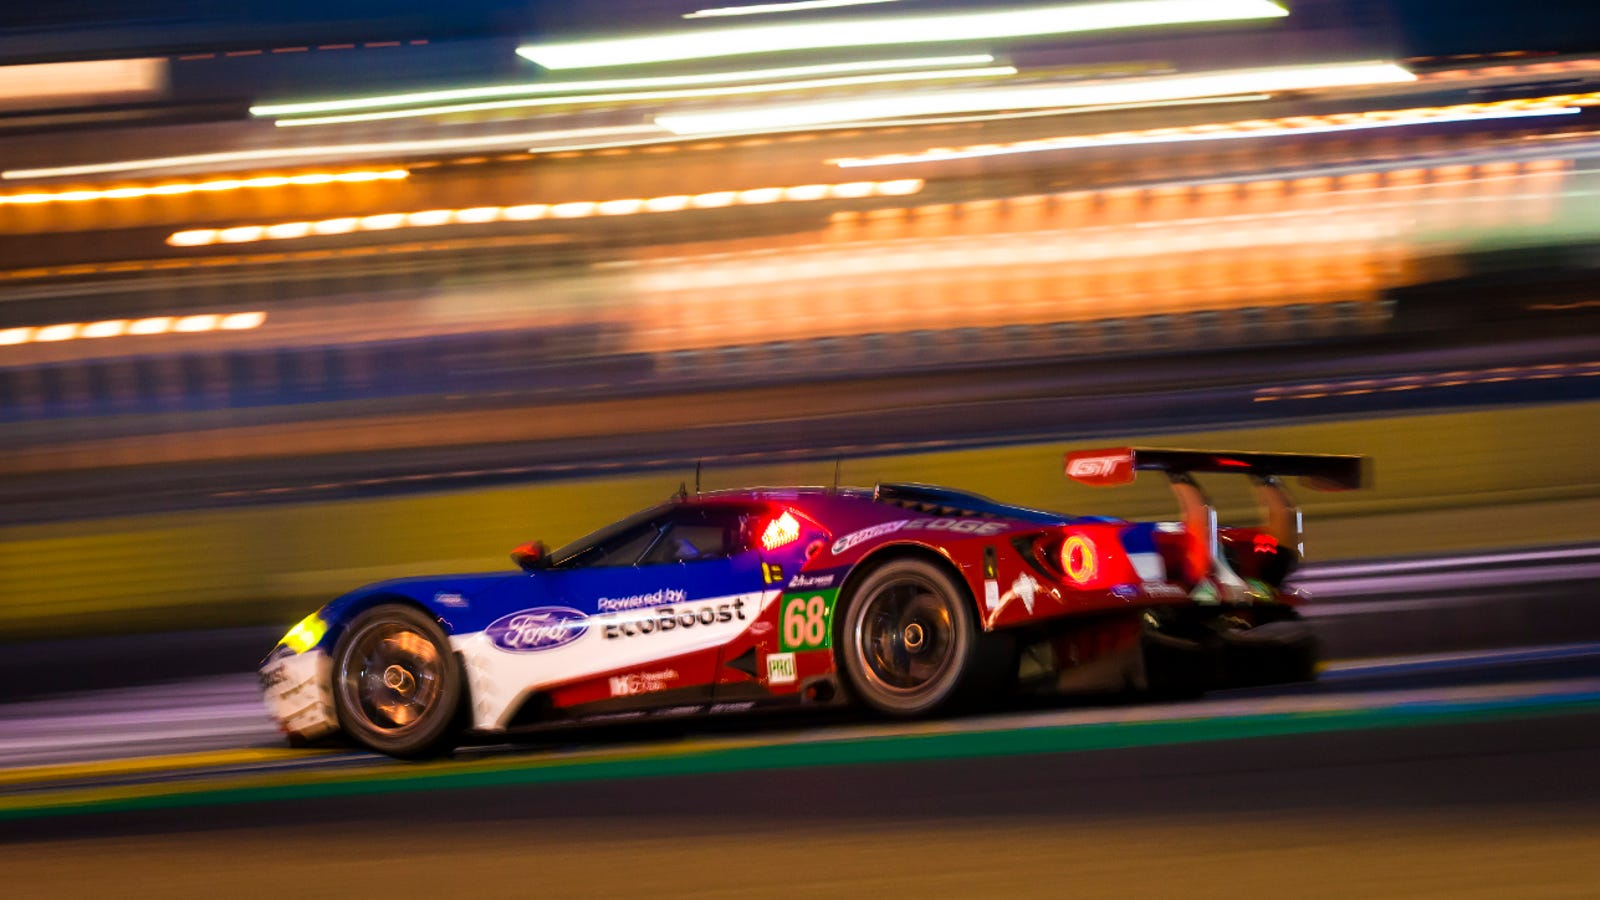 The Ford Gt And Ferrari  Teams Were Sandbagging Before Le Mans After All